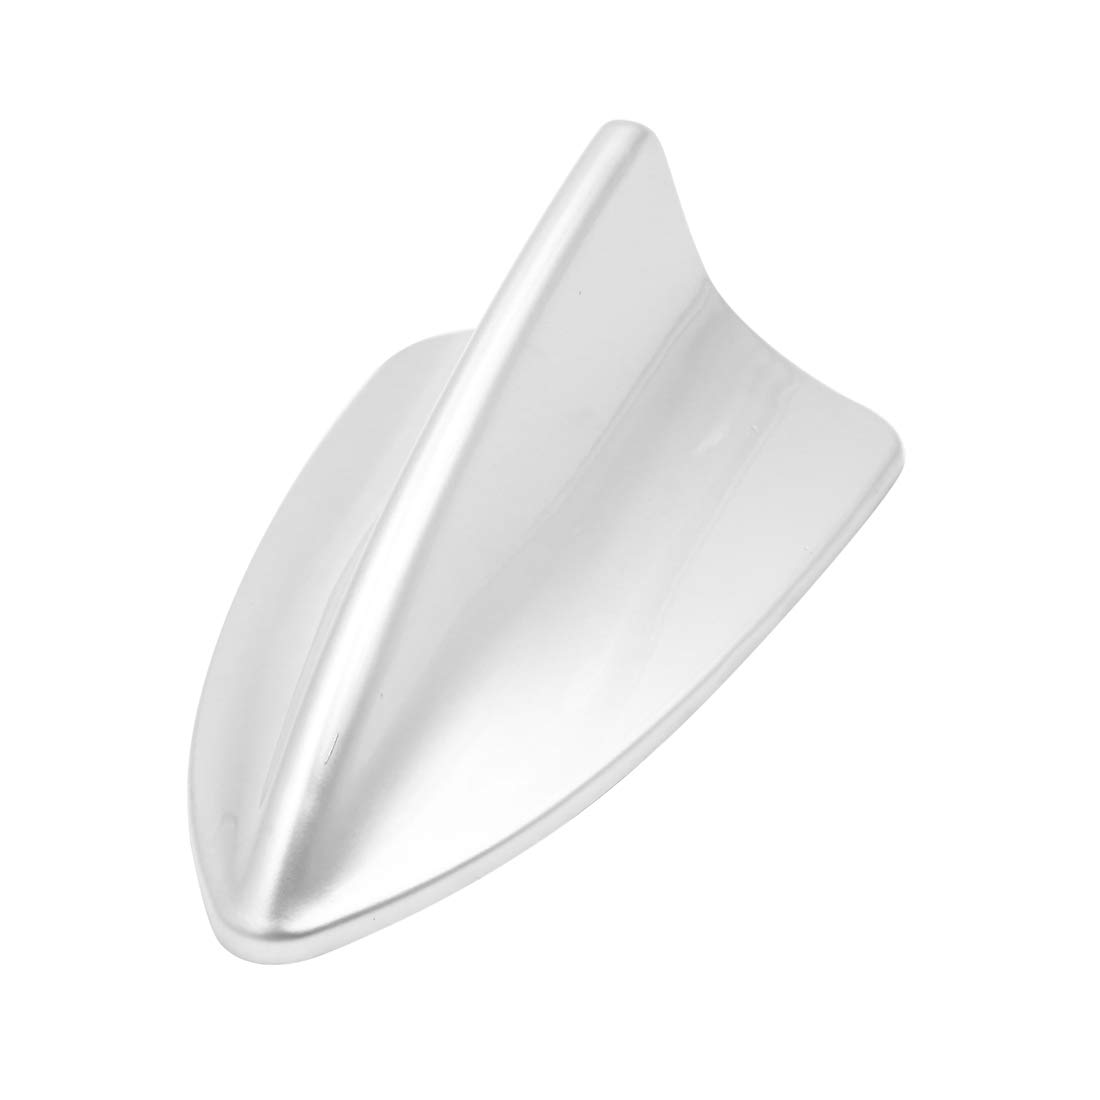 sourcing map Silver Tone Shark Fin Shape Adhesive SUV Car Decorative Antenna Aerial for BMW